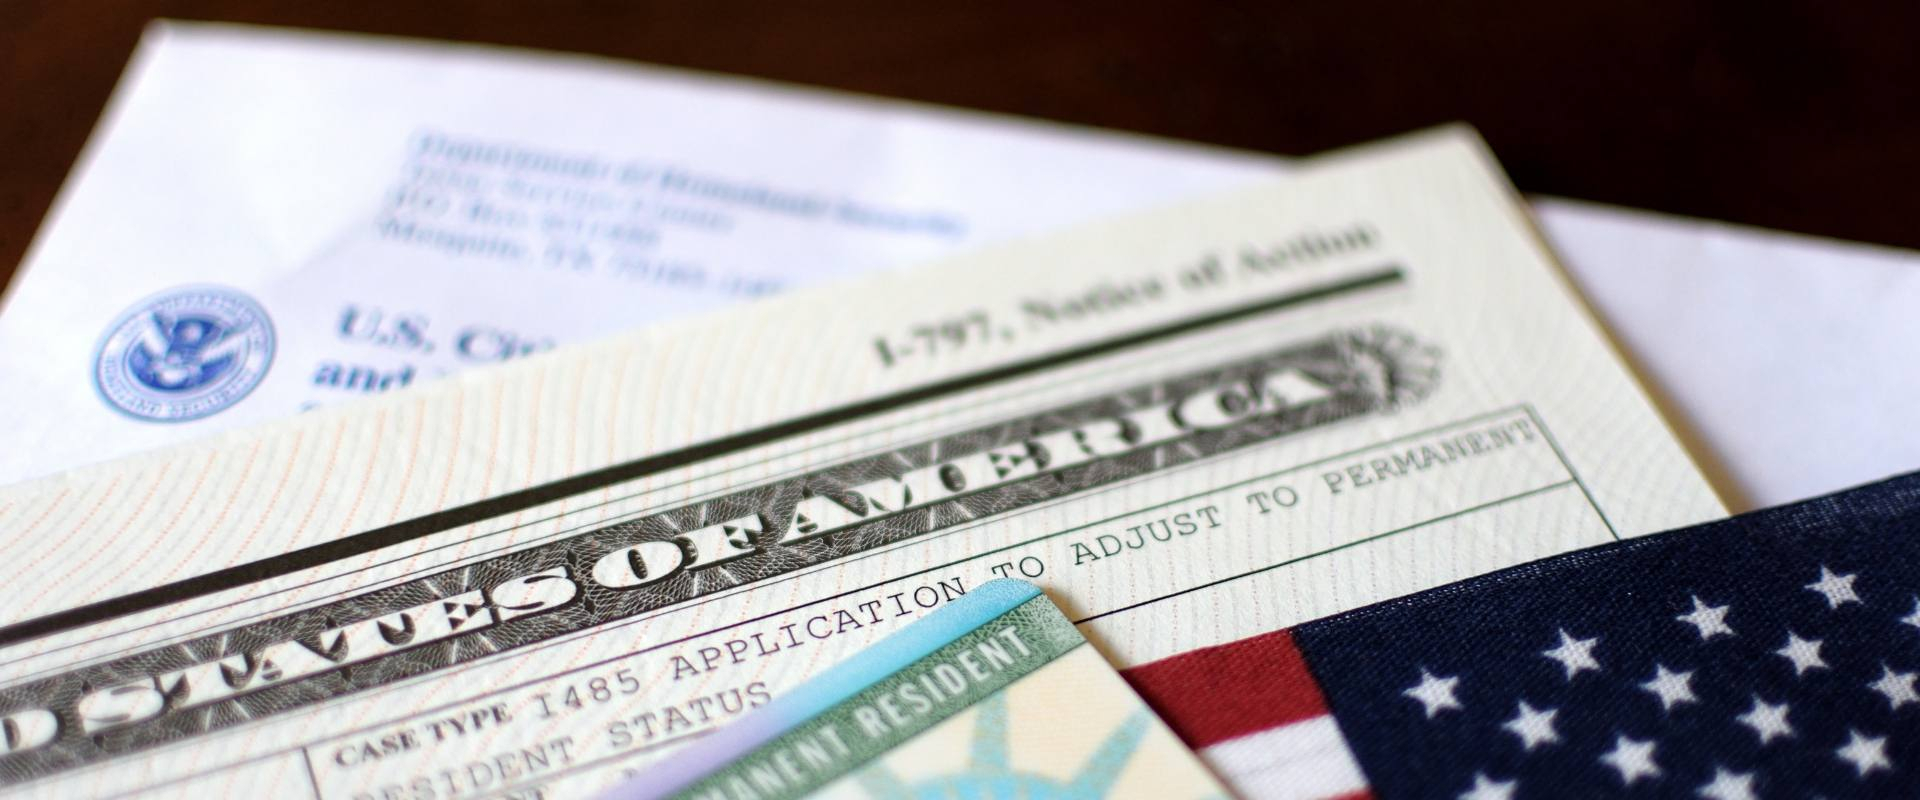 Everything You Need To Know About Form I-9 | Aps Payroll